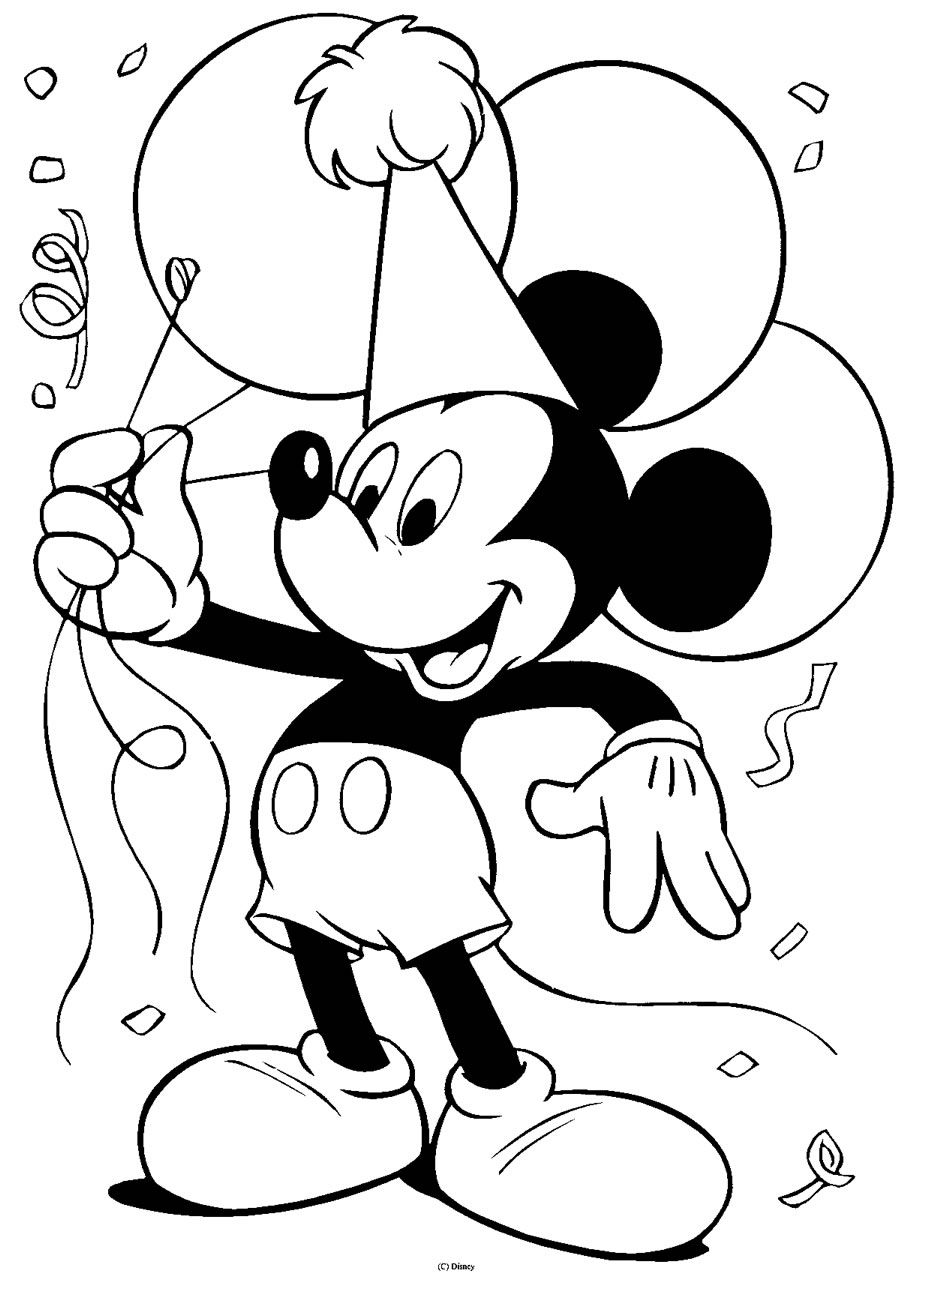 Color drawing to print : Famous characters - Walt Disney - Mickey ...